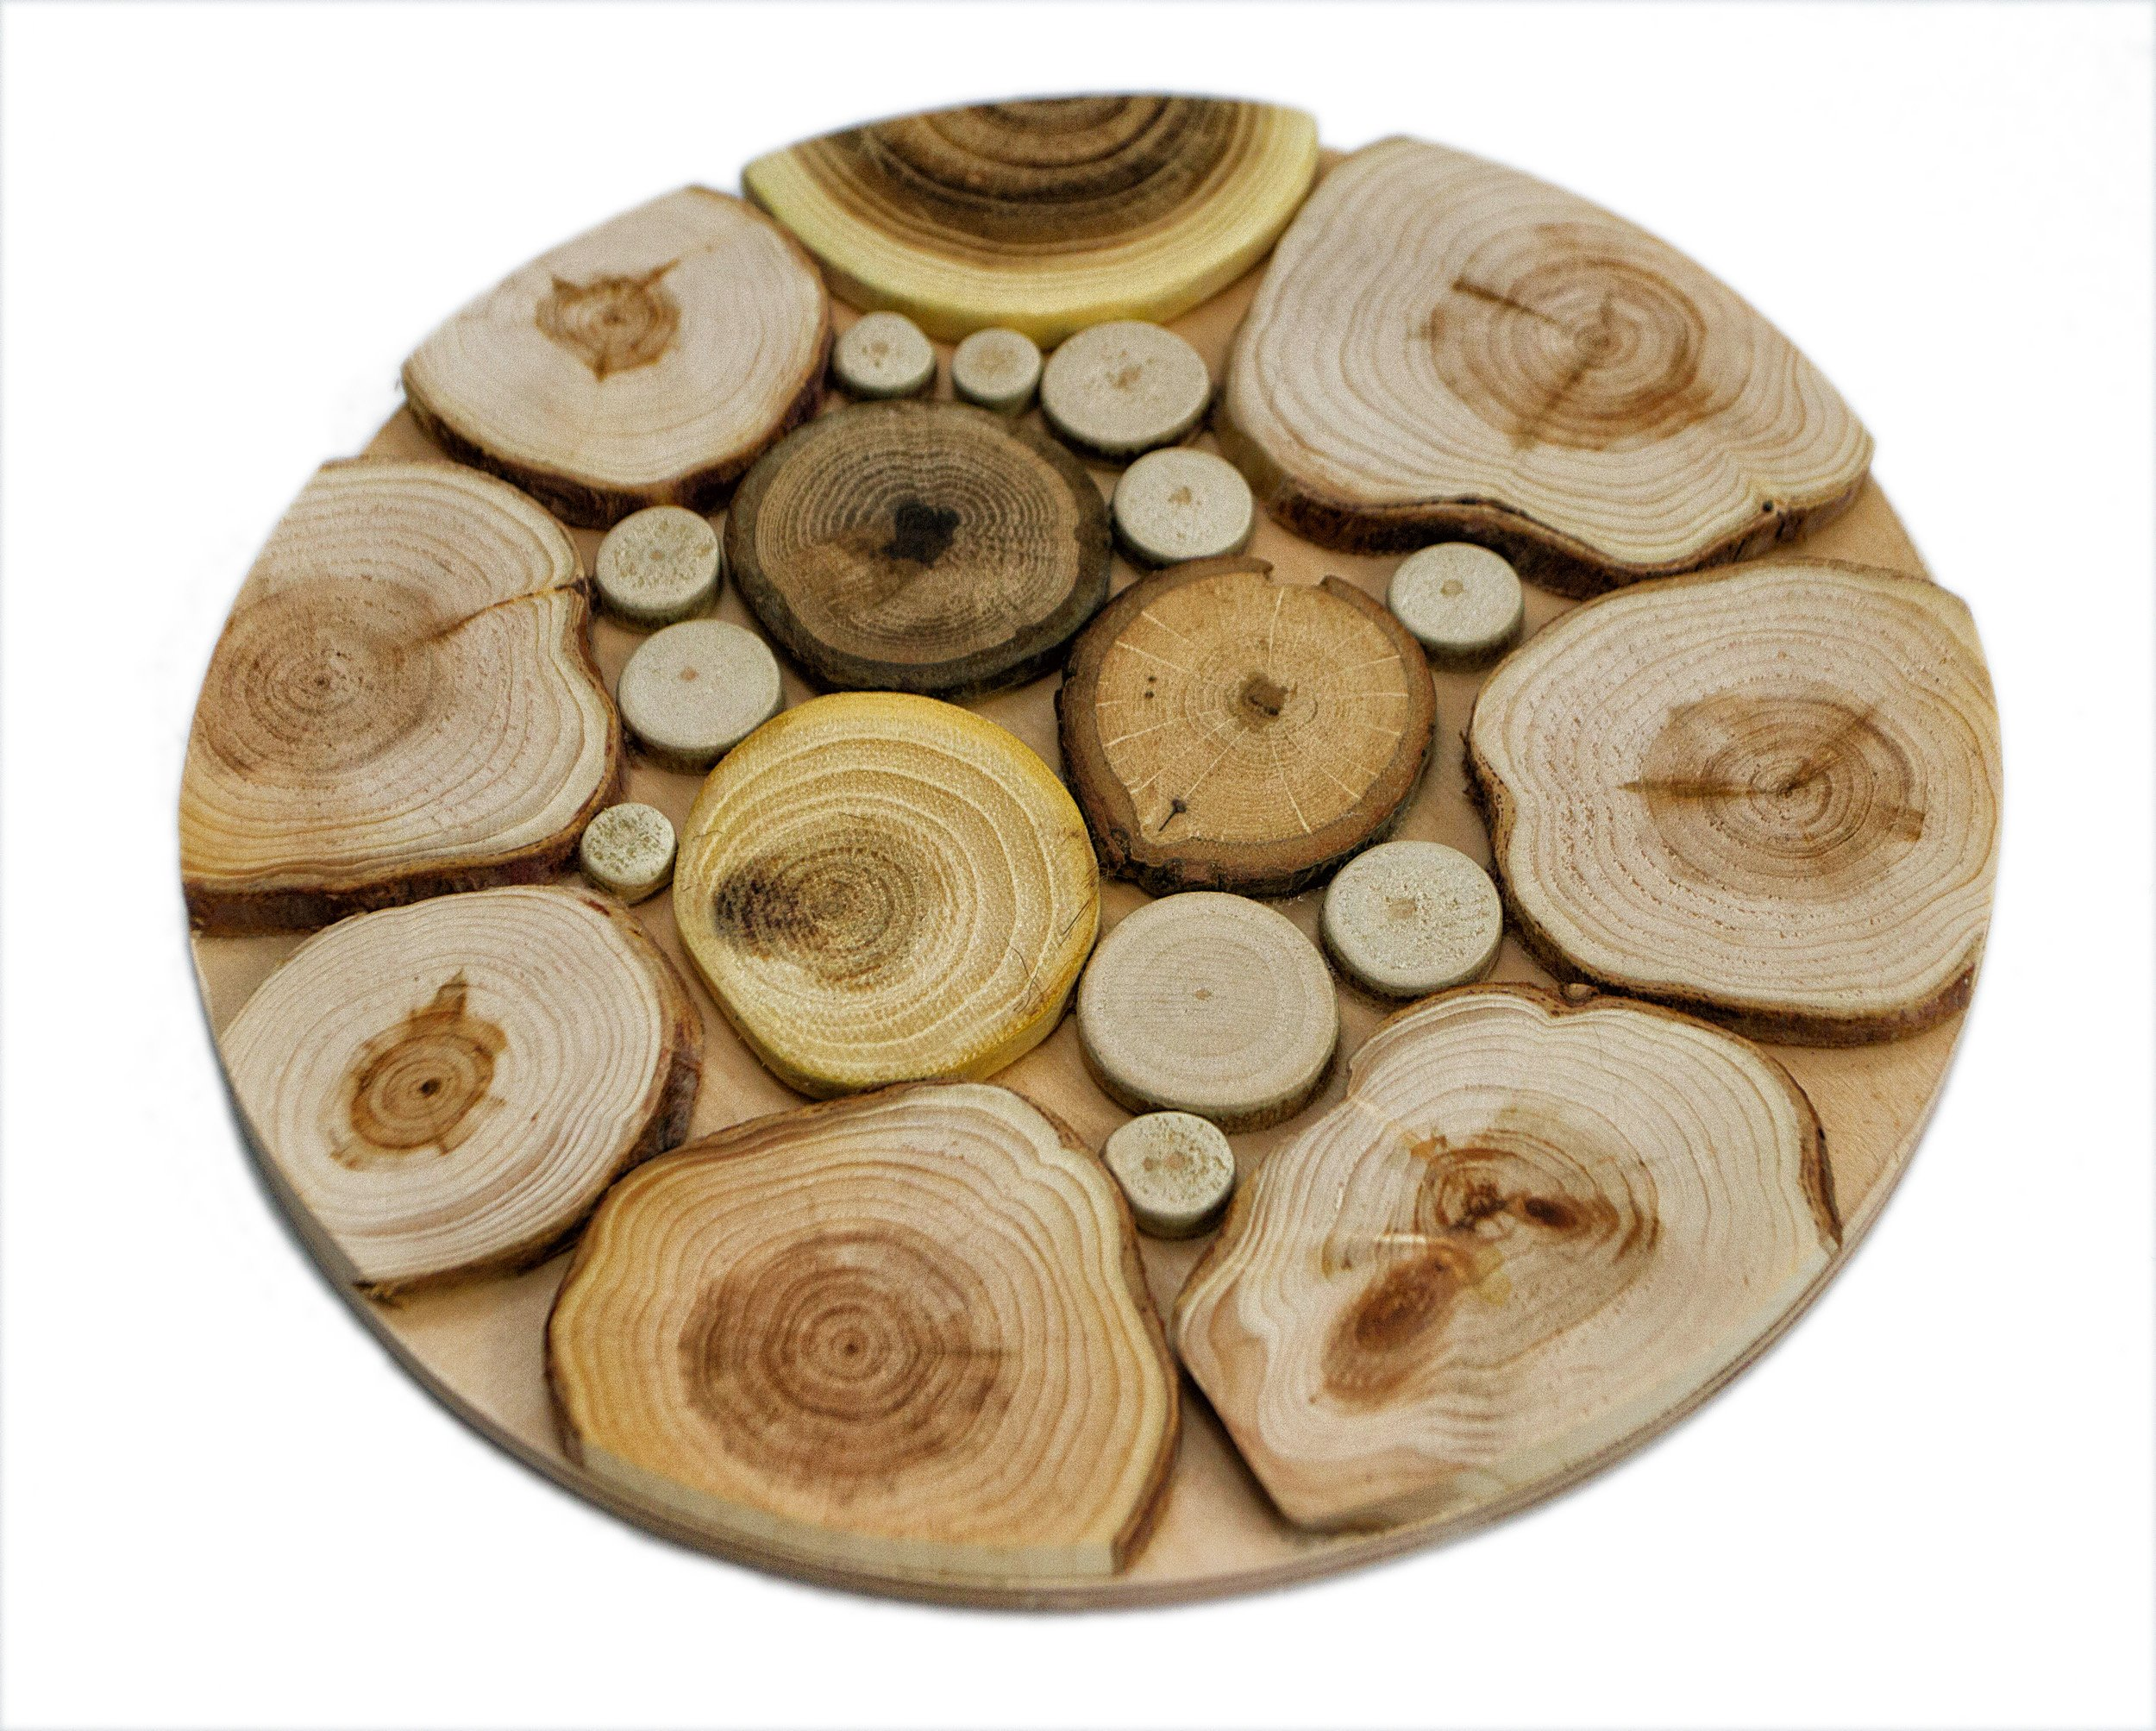 Handmade Wooden Trivet for Hot Dishes - 7.5 Inch. - Big Coaster - 6 Sorts of Wood - Natural Smell - Unique Art Decor in the Kitchen - Made by SPL Woodcraft Ukraine by SPL woodcraft (Image #1)